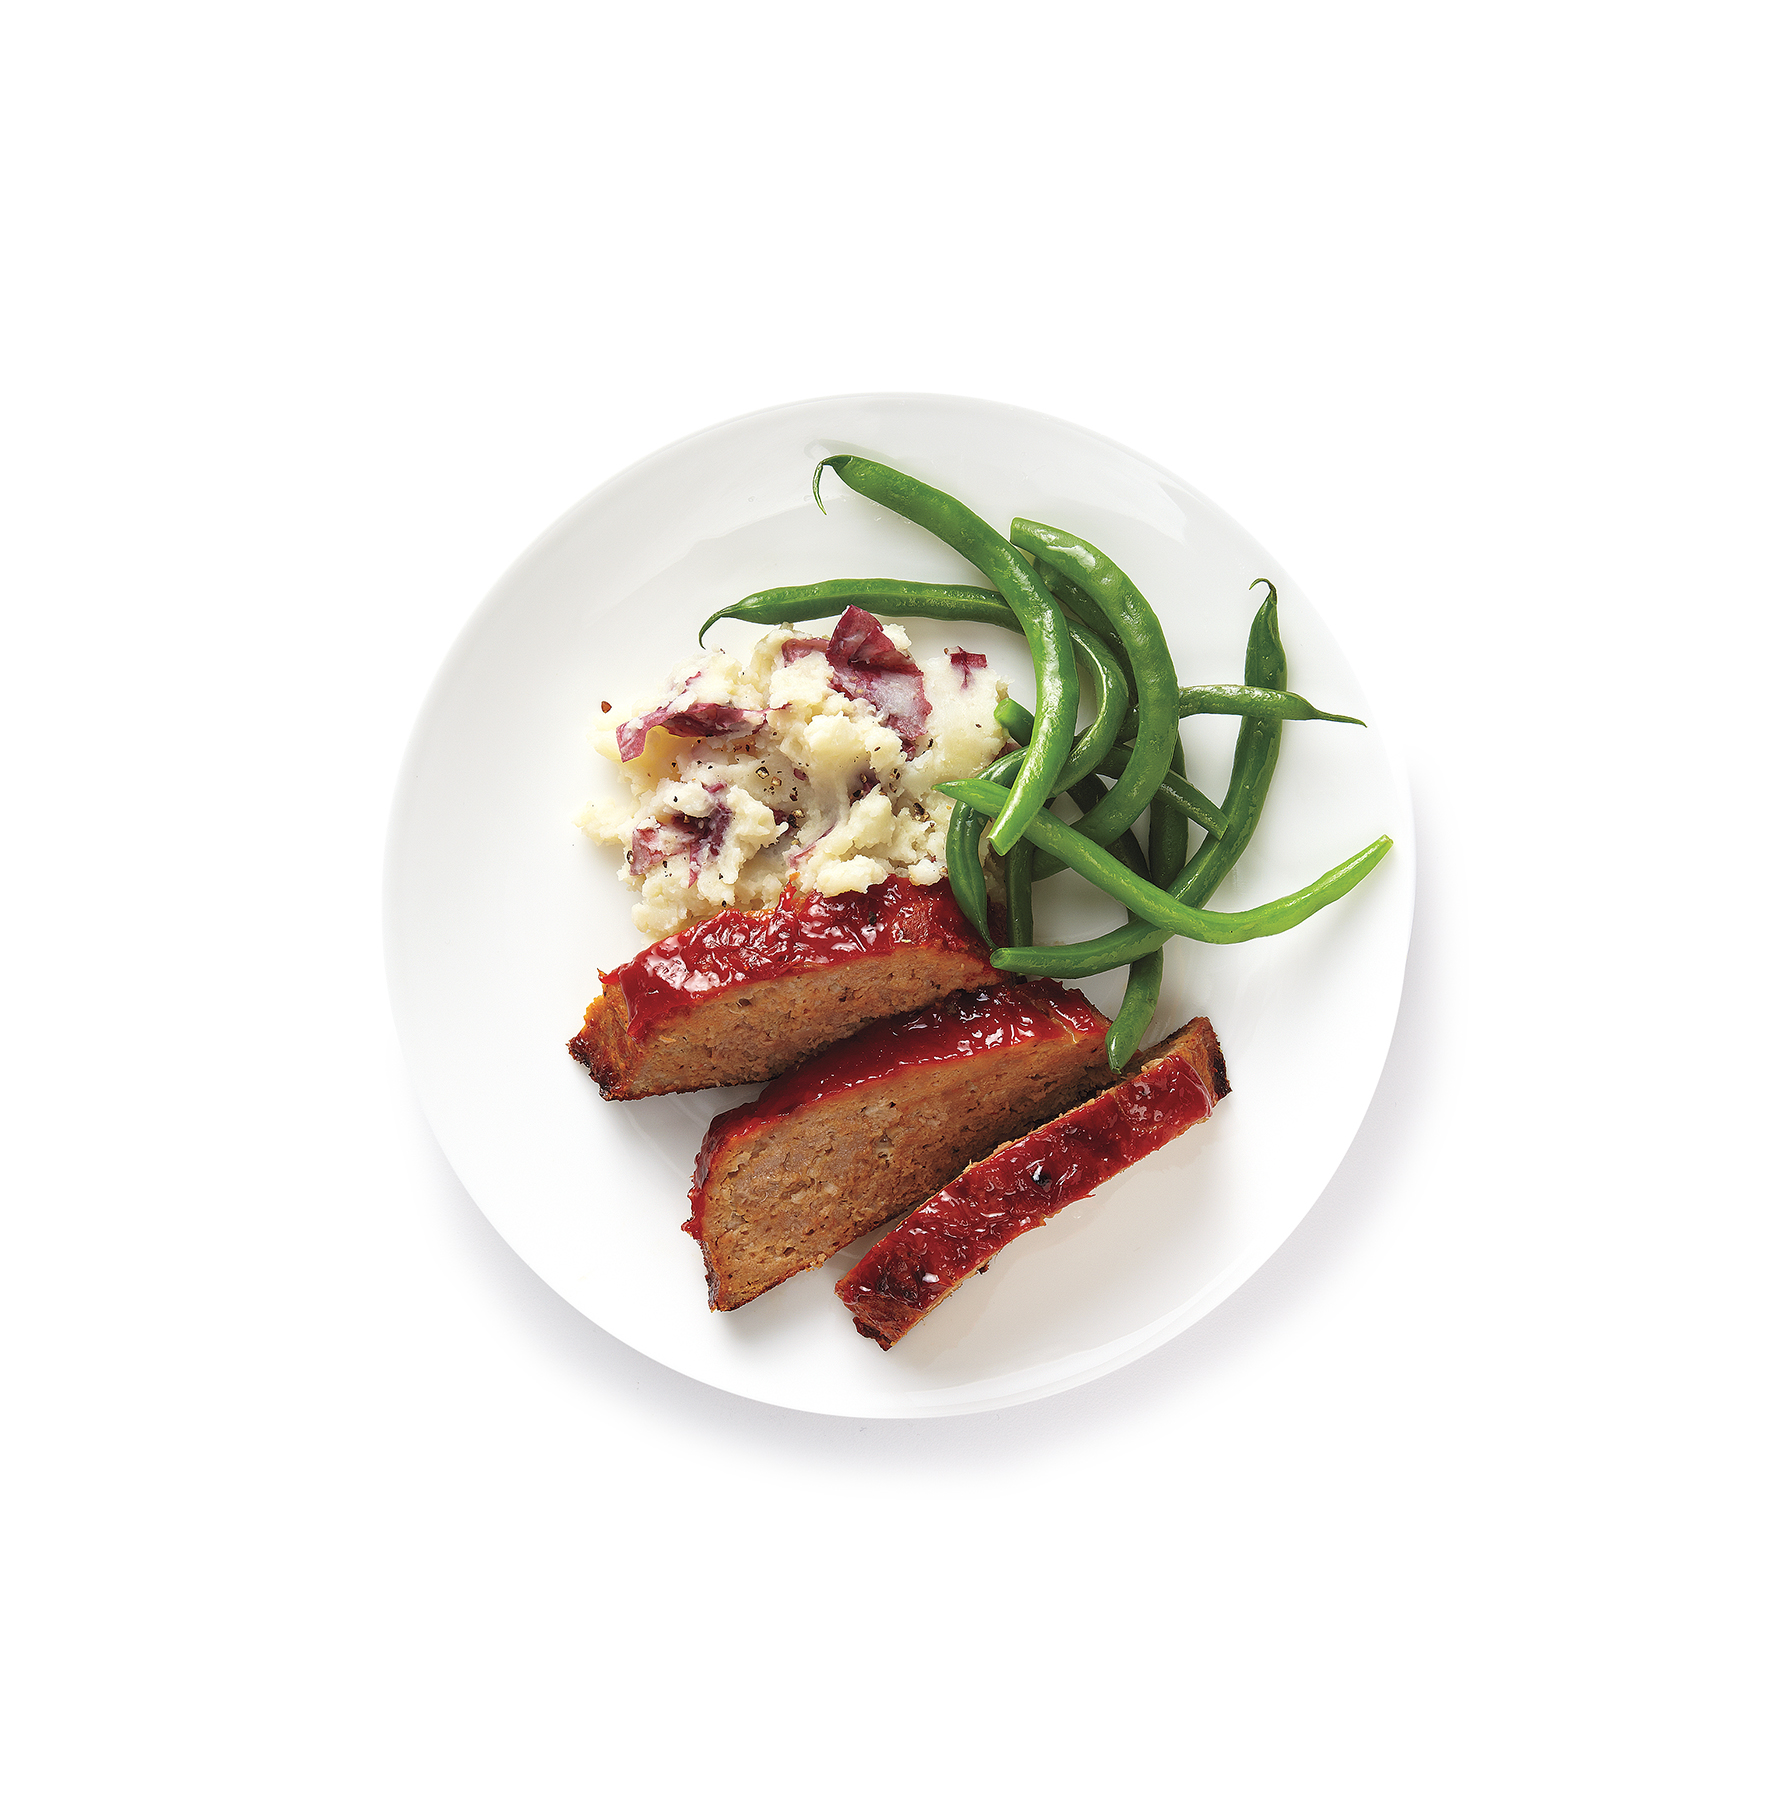 Turkey Meat Loaf With Mashed Potatoes and Green Beans